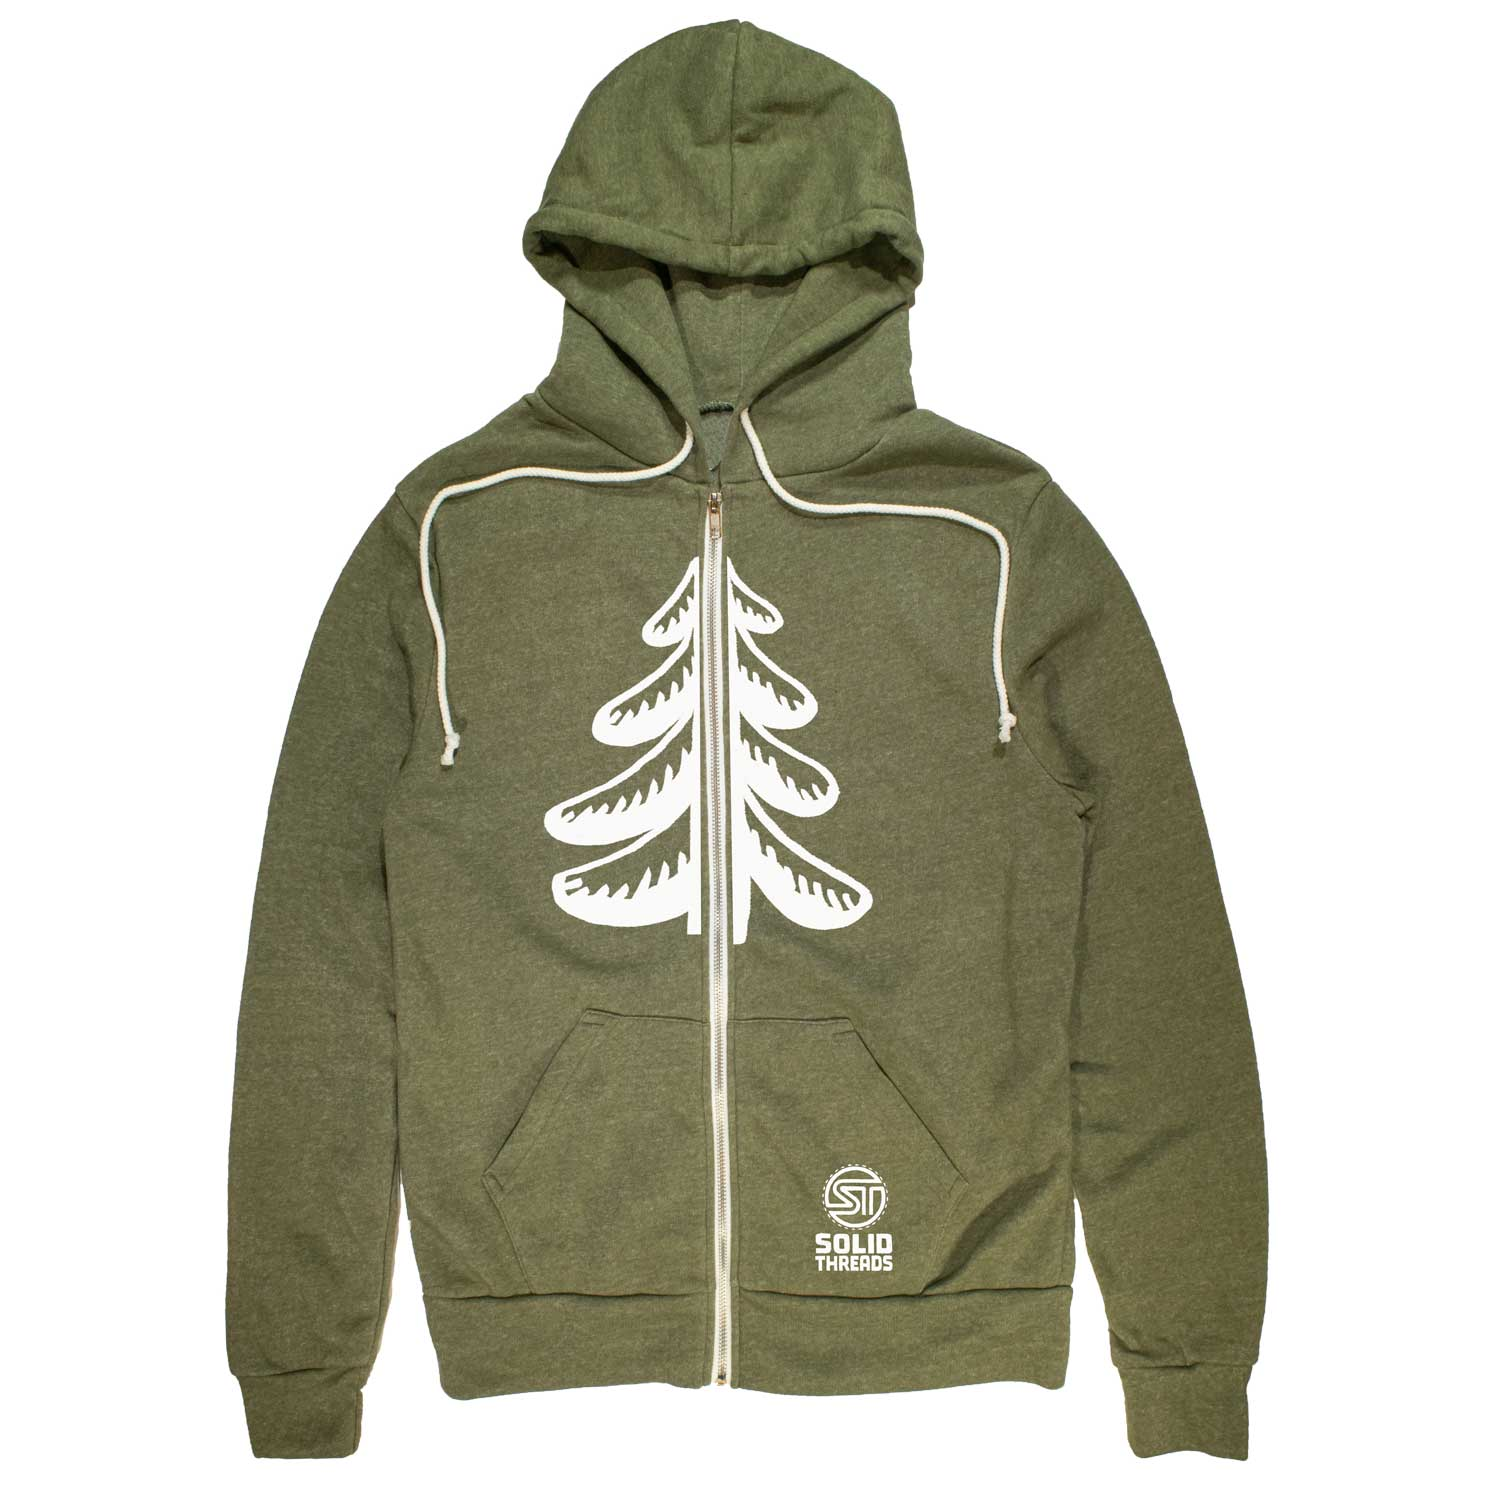 Flowing Pine Tree Vintage Zip Up Hoodie | Cool Forest Aesthetic Graphic | Solid Threads